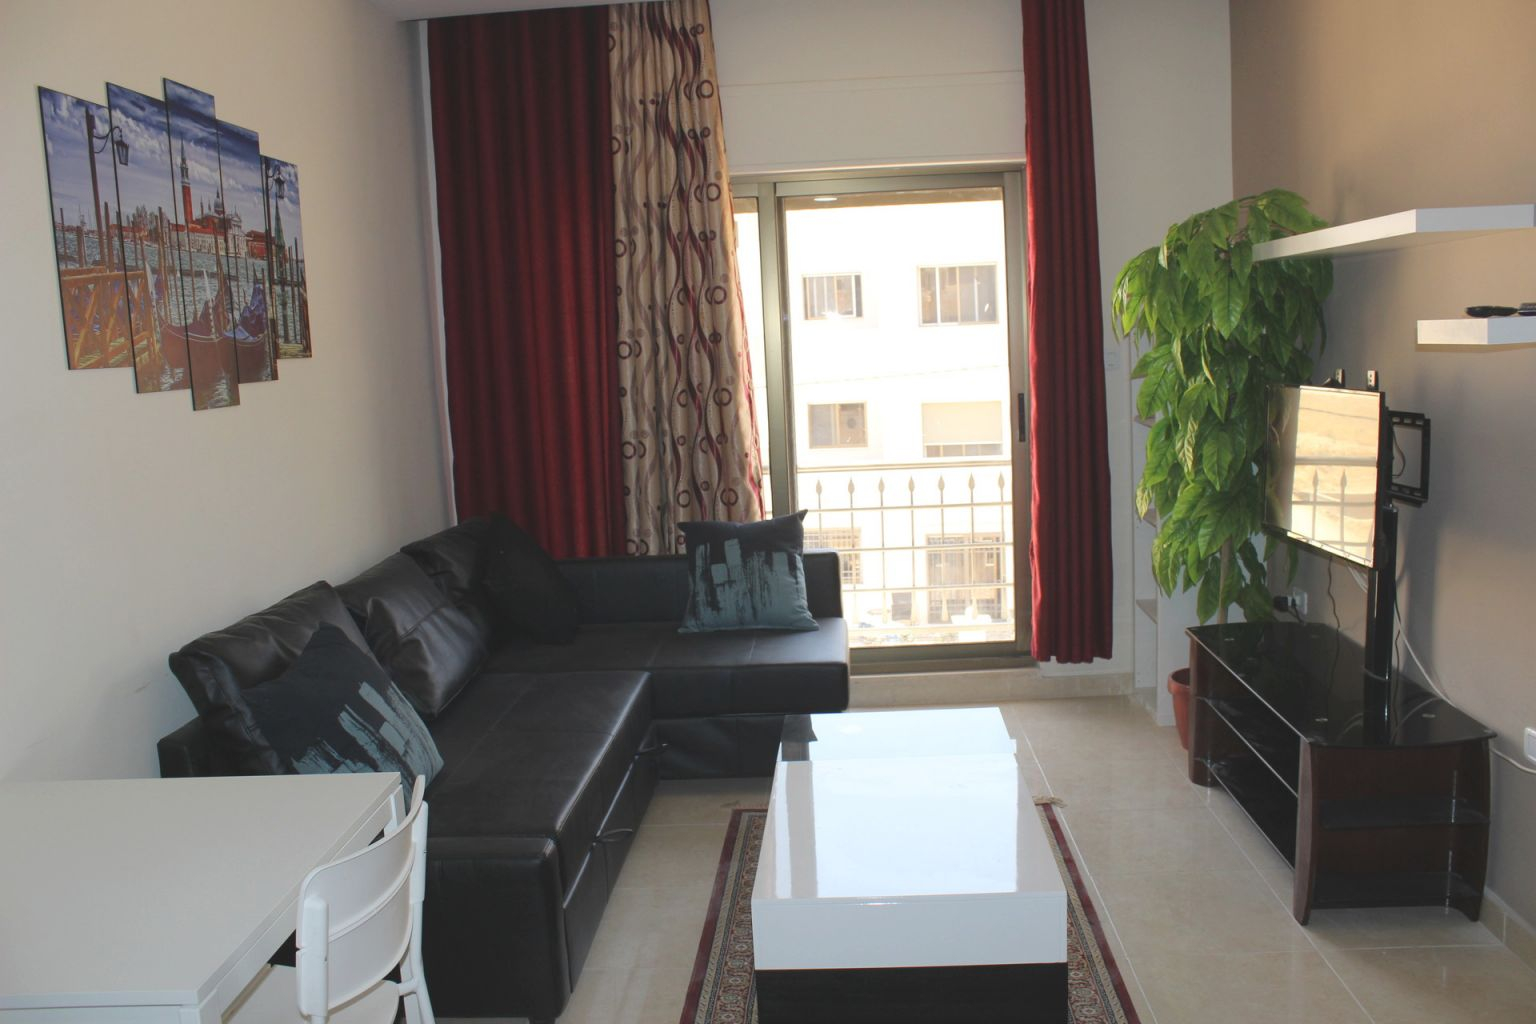 One Bedroom Apartment Furnished For Rent   Travel pertaining to Luxury One Bedroom Furnished Apartment